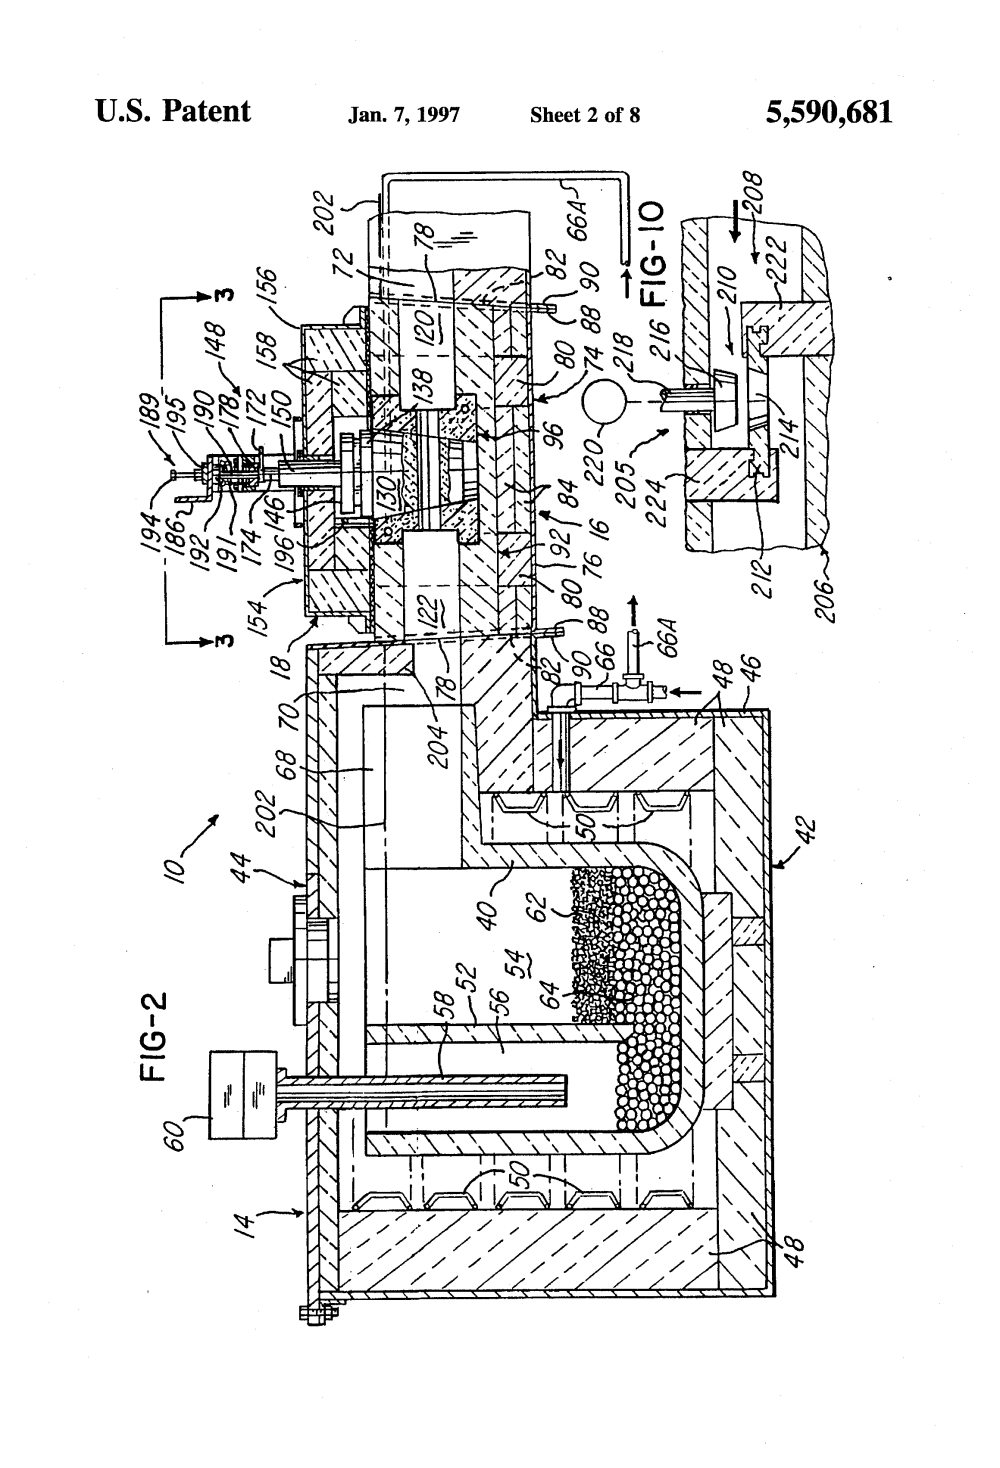 medium resolution of patent us5590681 valve assembly google patents patent us5590681 valve assembly google patents fuel pump wiring harness diagram 681 fuel pump wiring harness